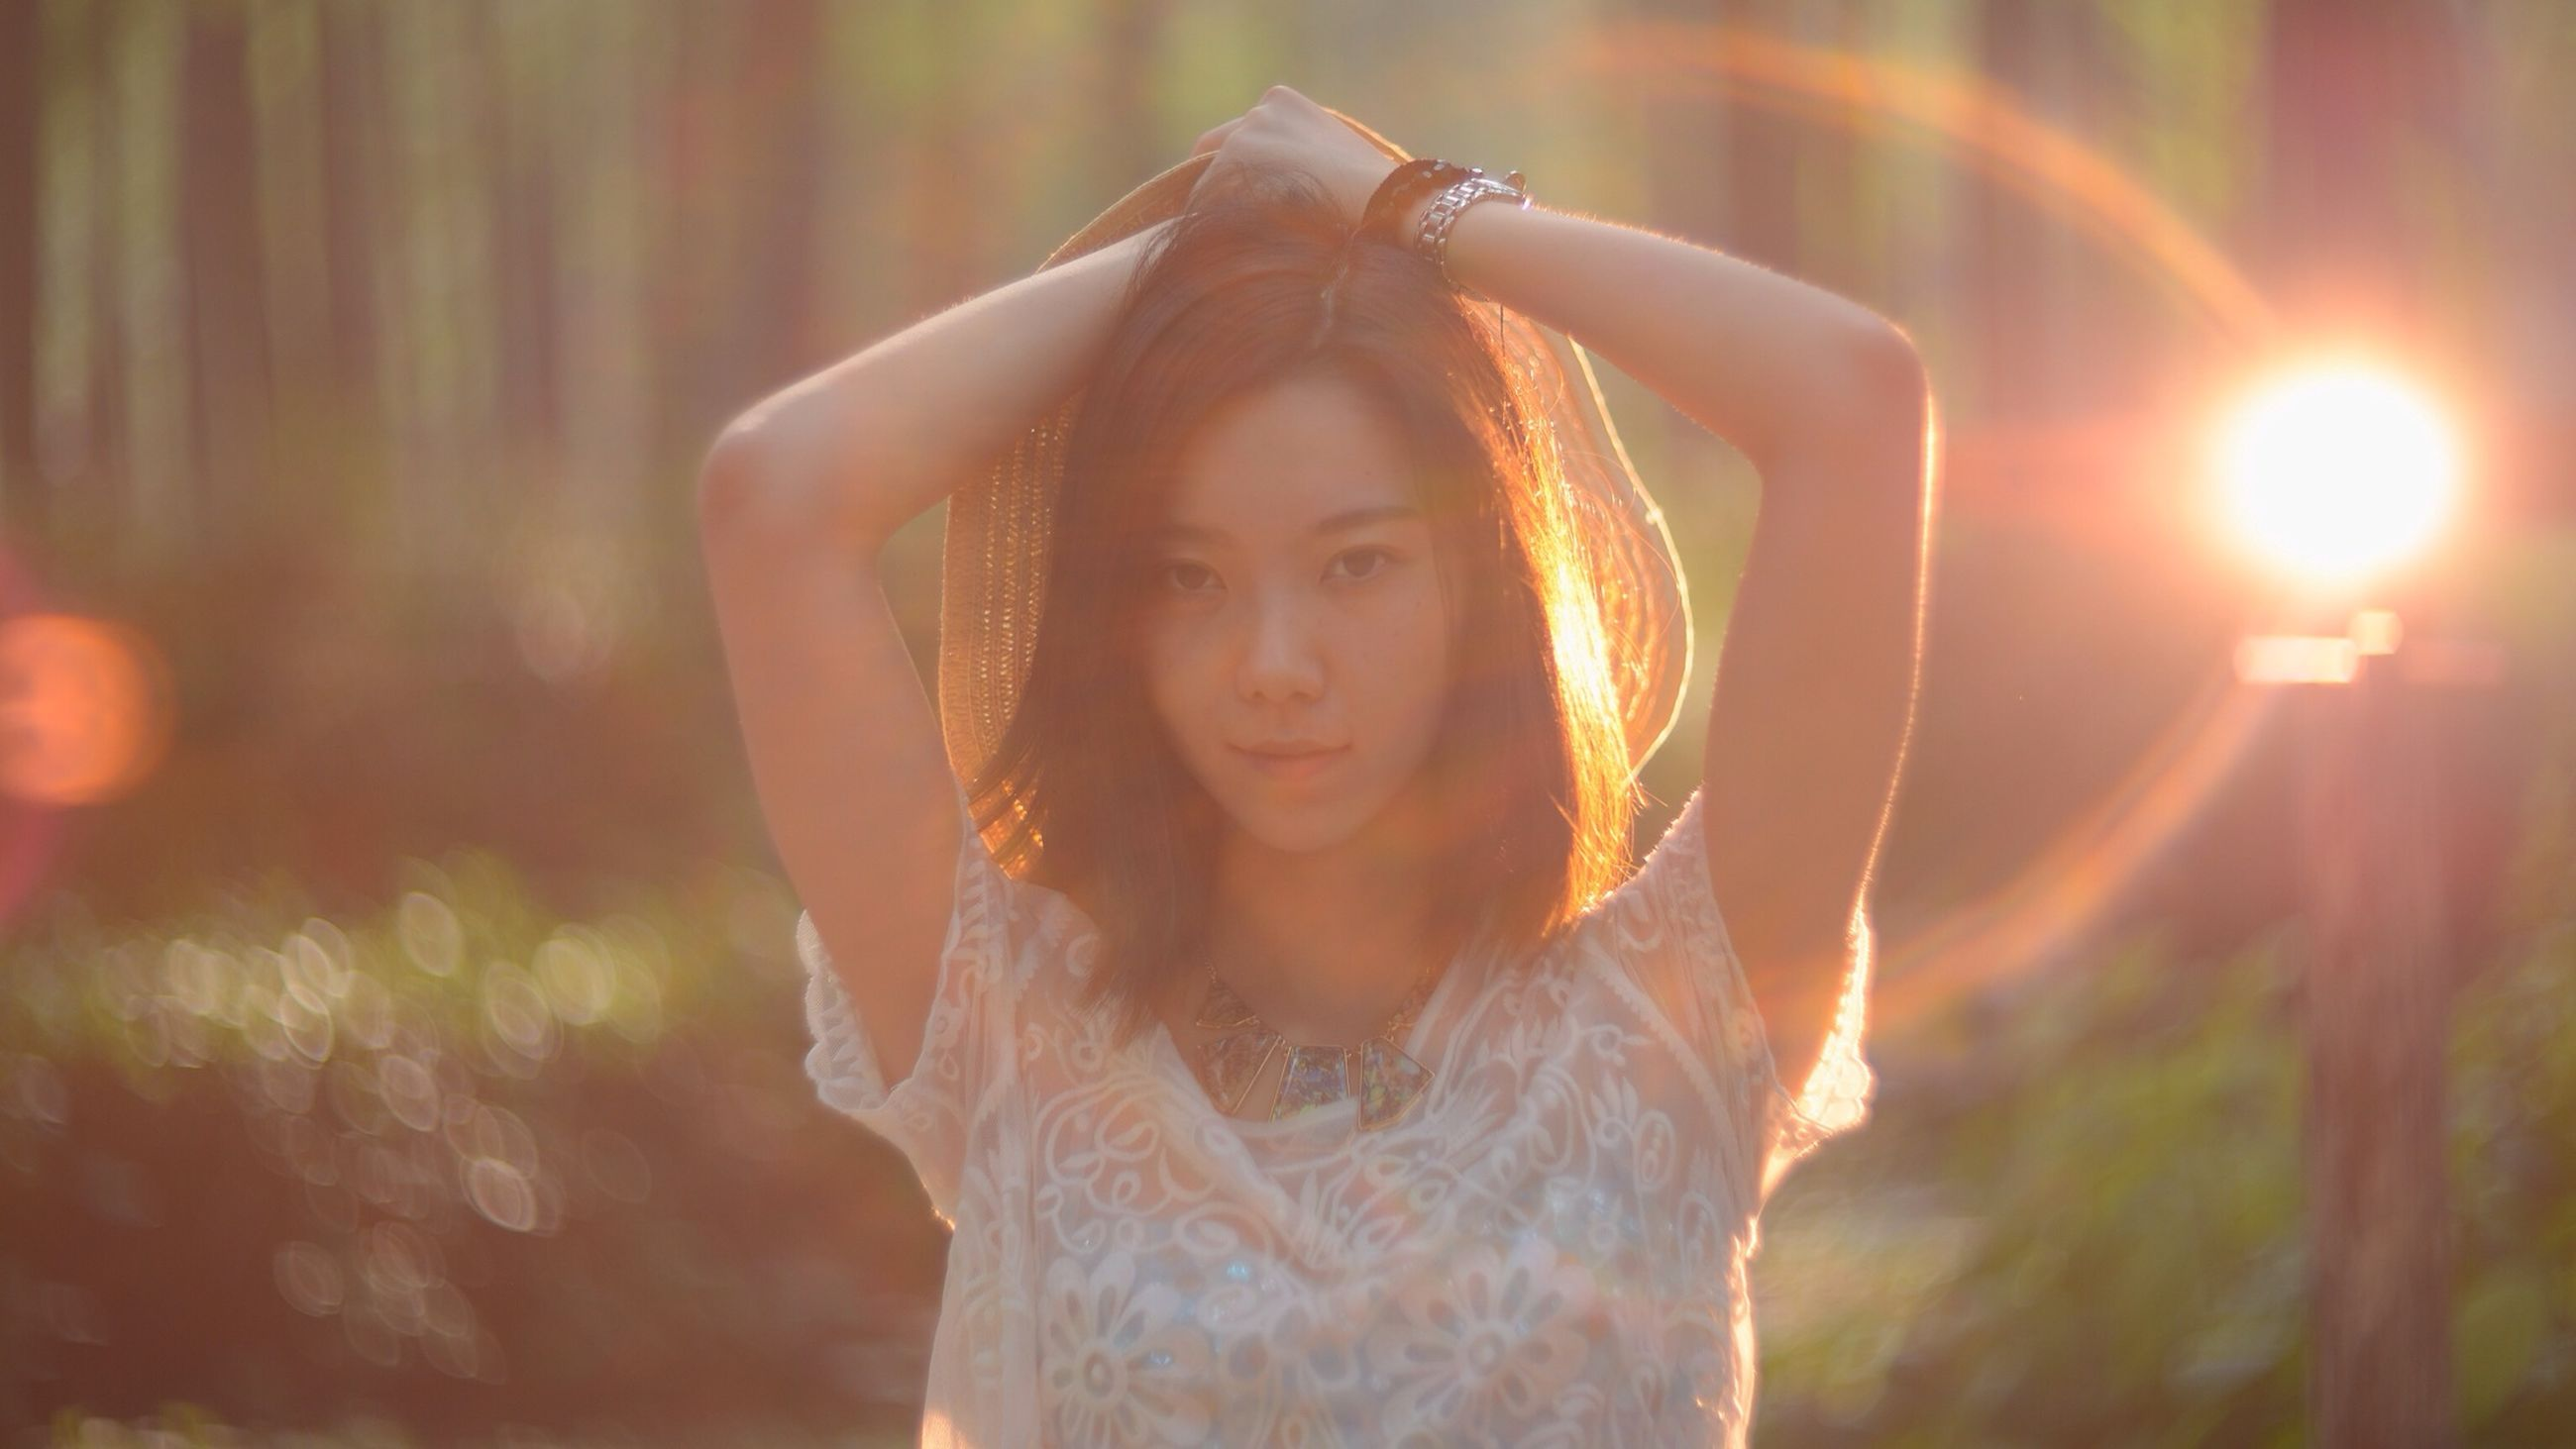 lifestyles, person, leisure activity, portrait, looking at camera, young adult, happiness, young women, front view, smiling, casual clothing, standing, focus on foreground, sunlight, lens flare, headshot, enjoyment, outdoors